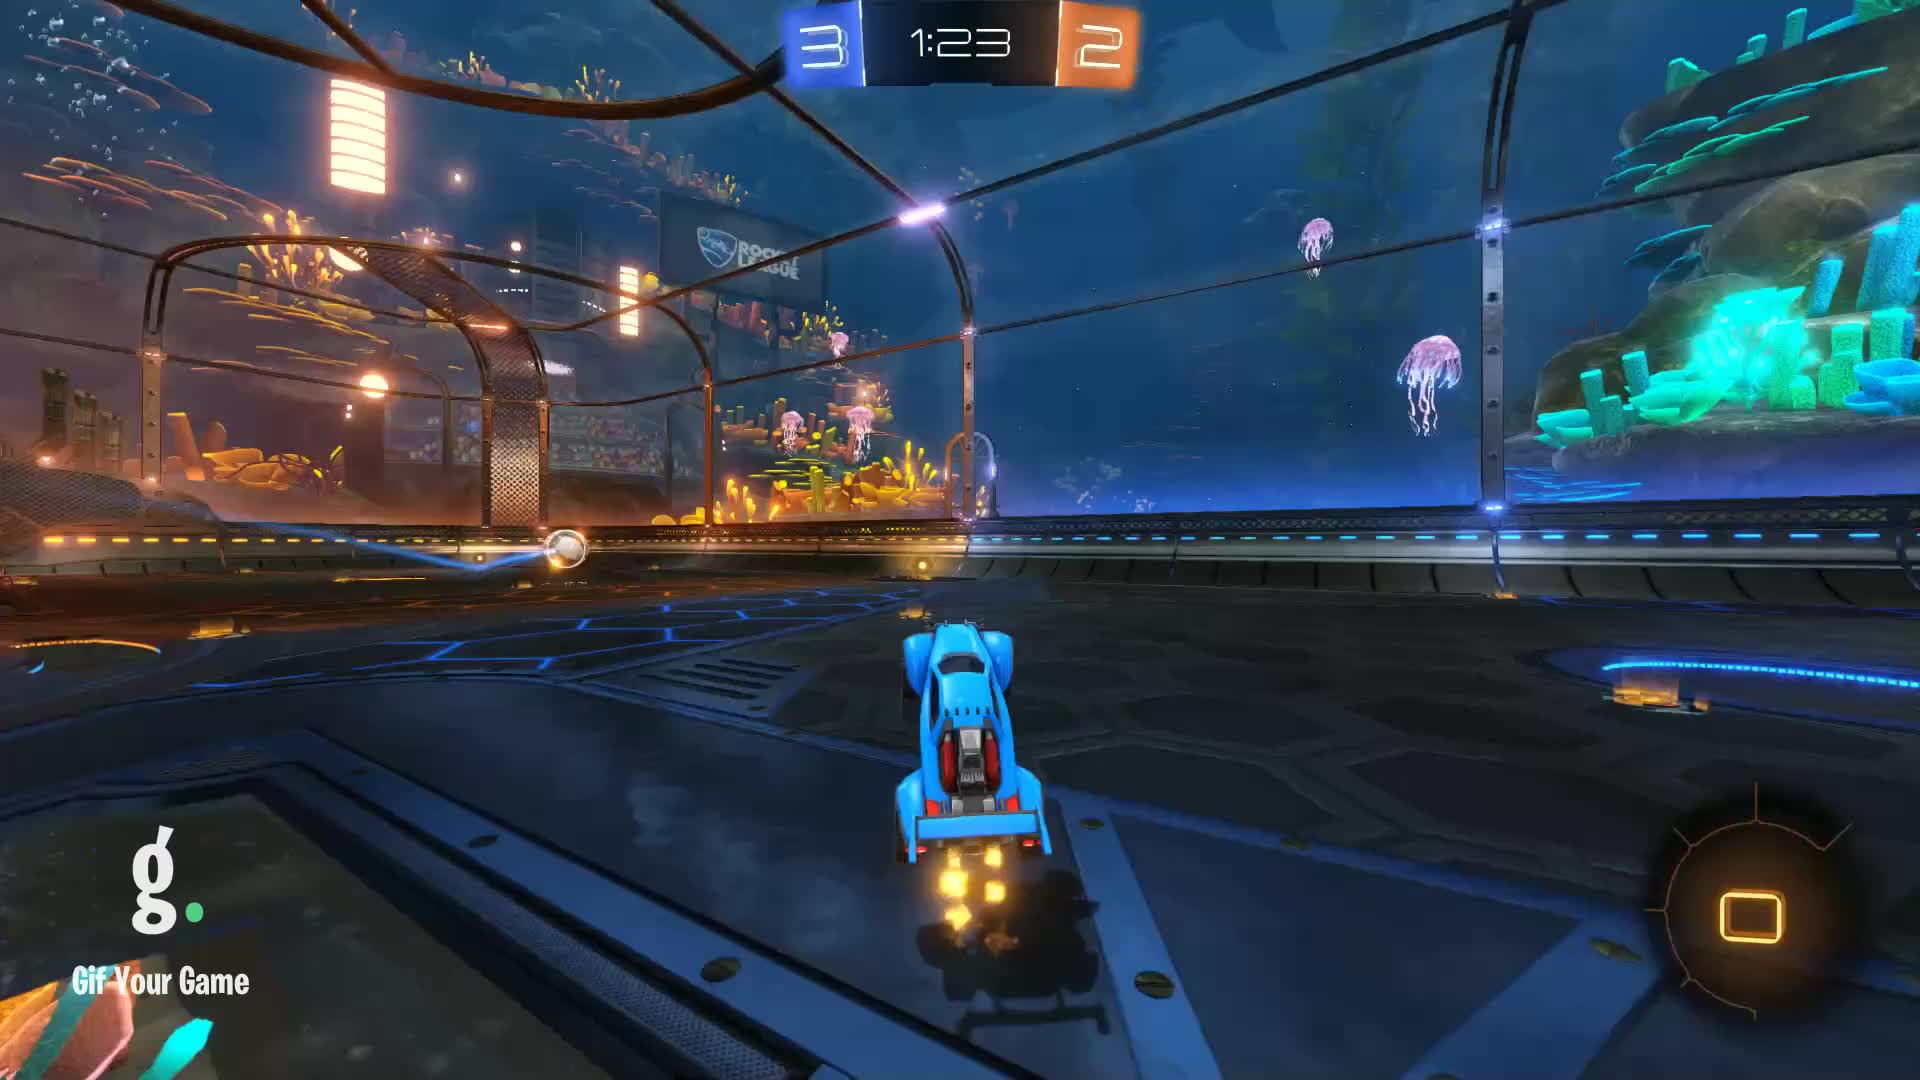 Gif Your Game, GifYourGame, Goal, Rabid!, Rocket League, RocketLeague, Goal 6: Rabid! GIFs